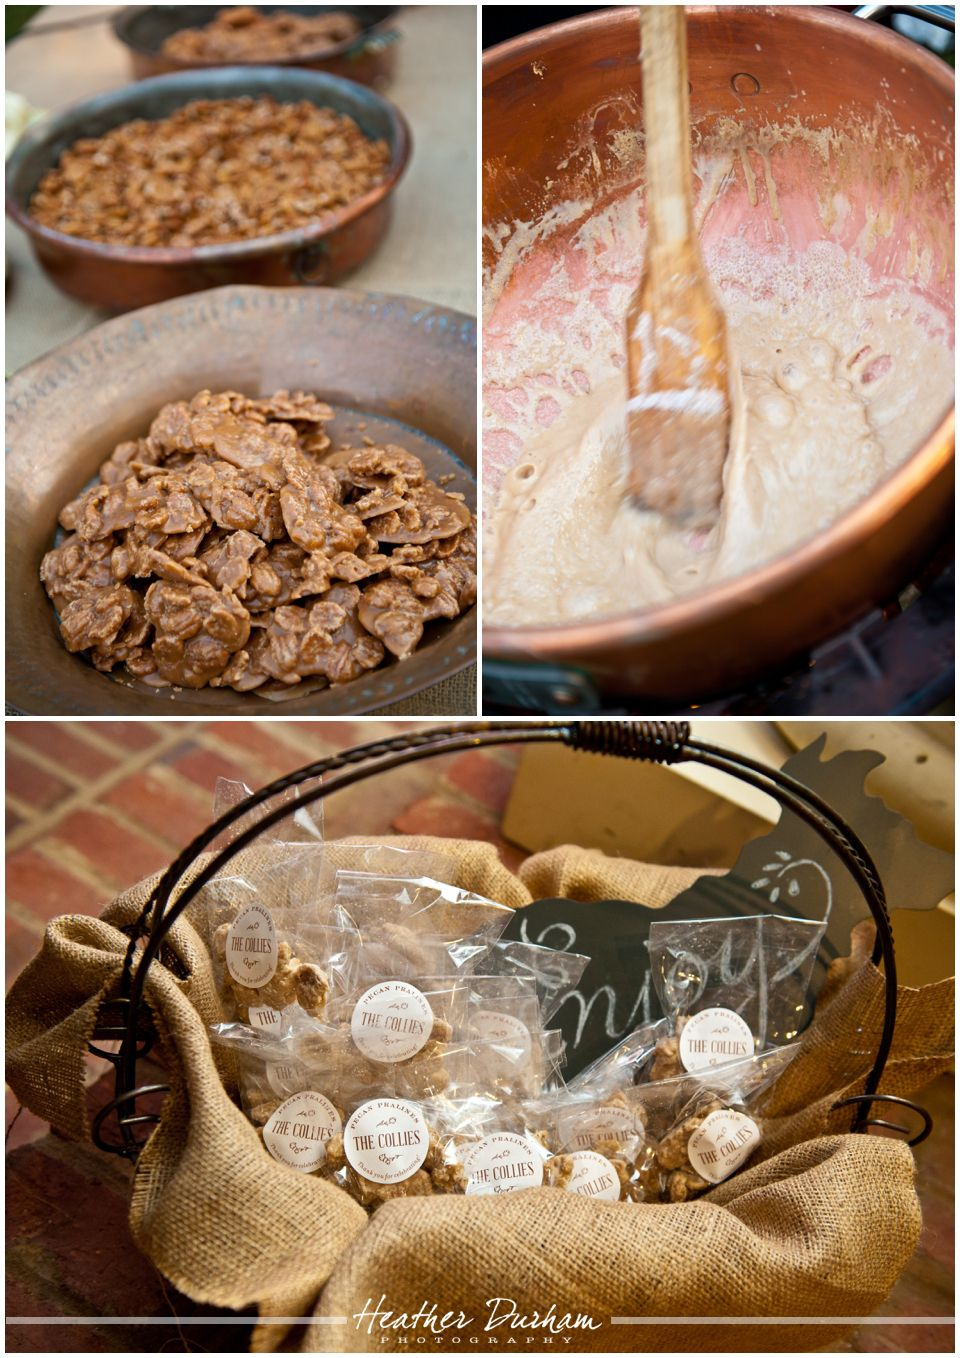 Arrington Clay Homemade Pralines Southern Wedding Reception Food